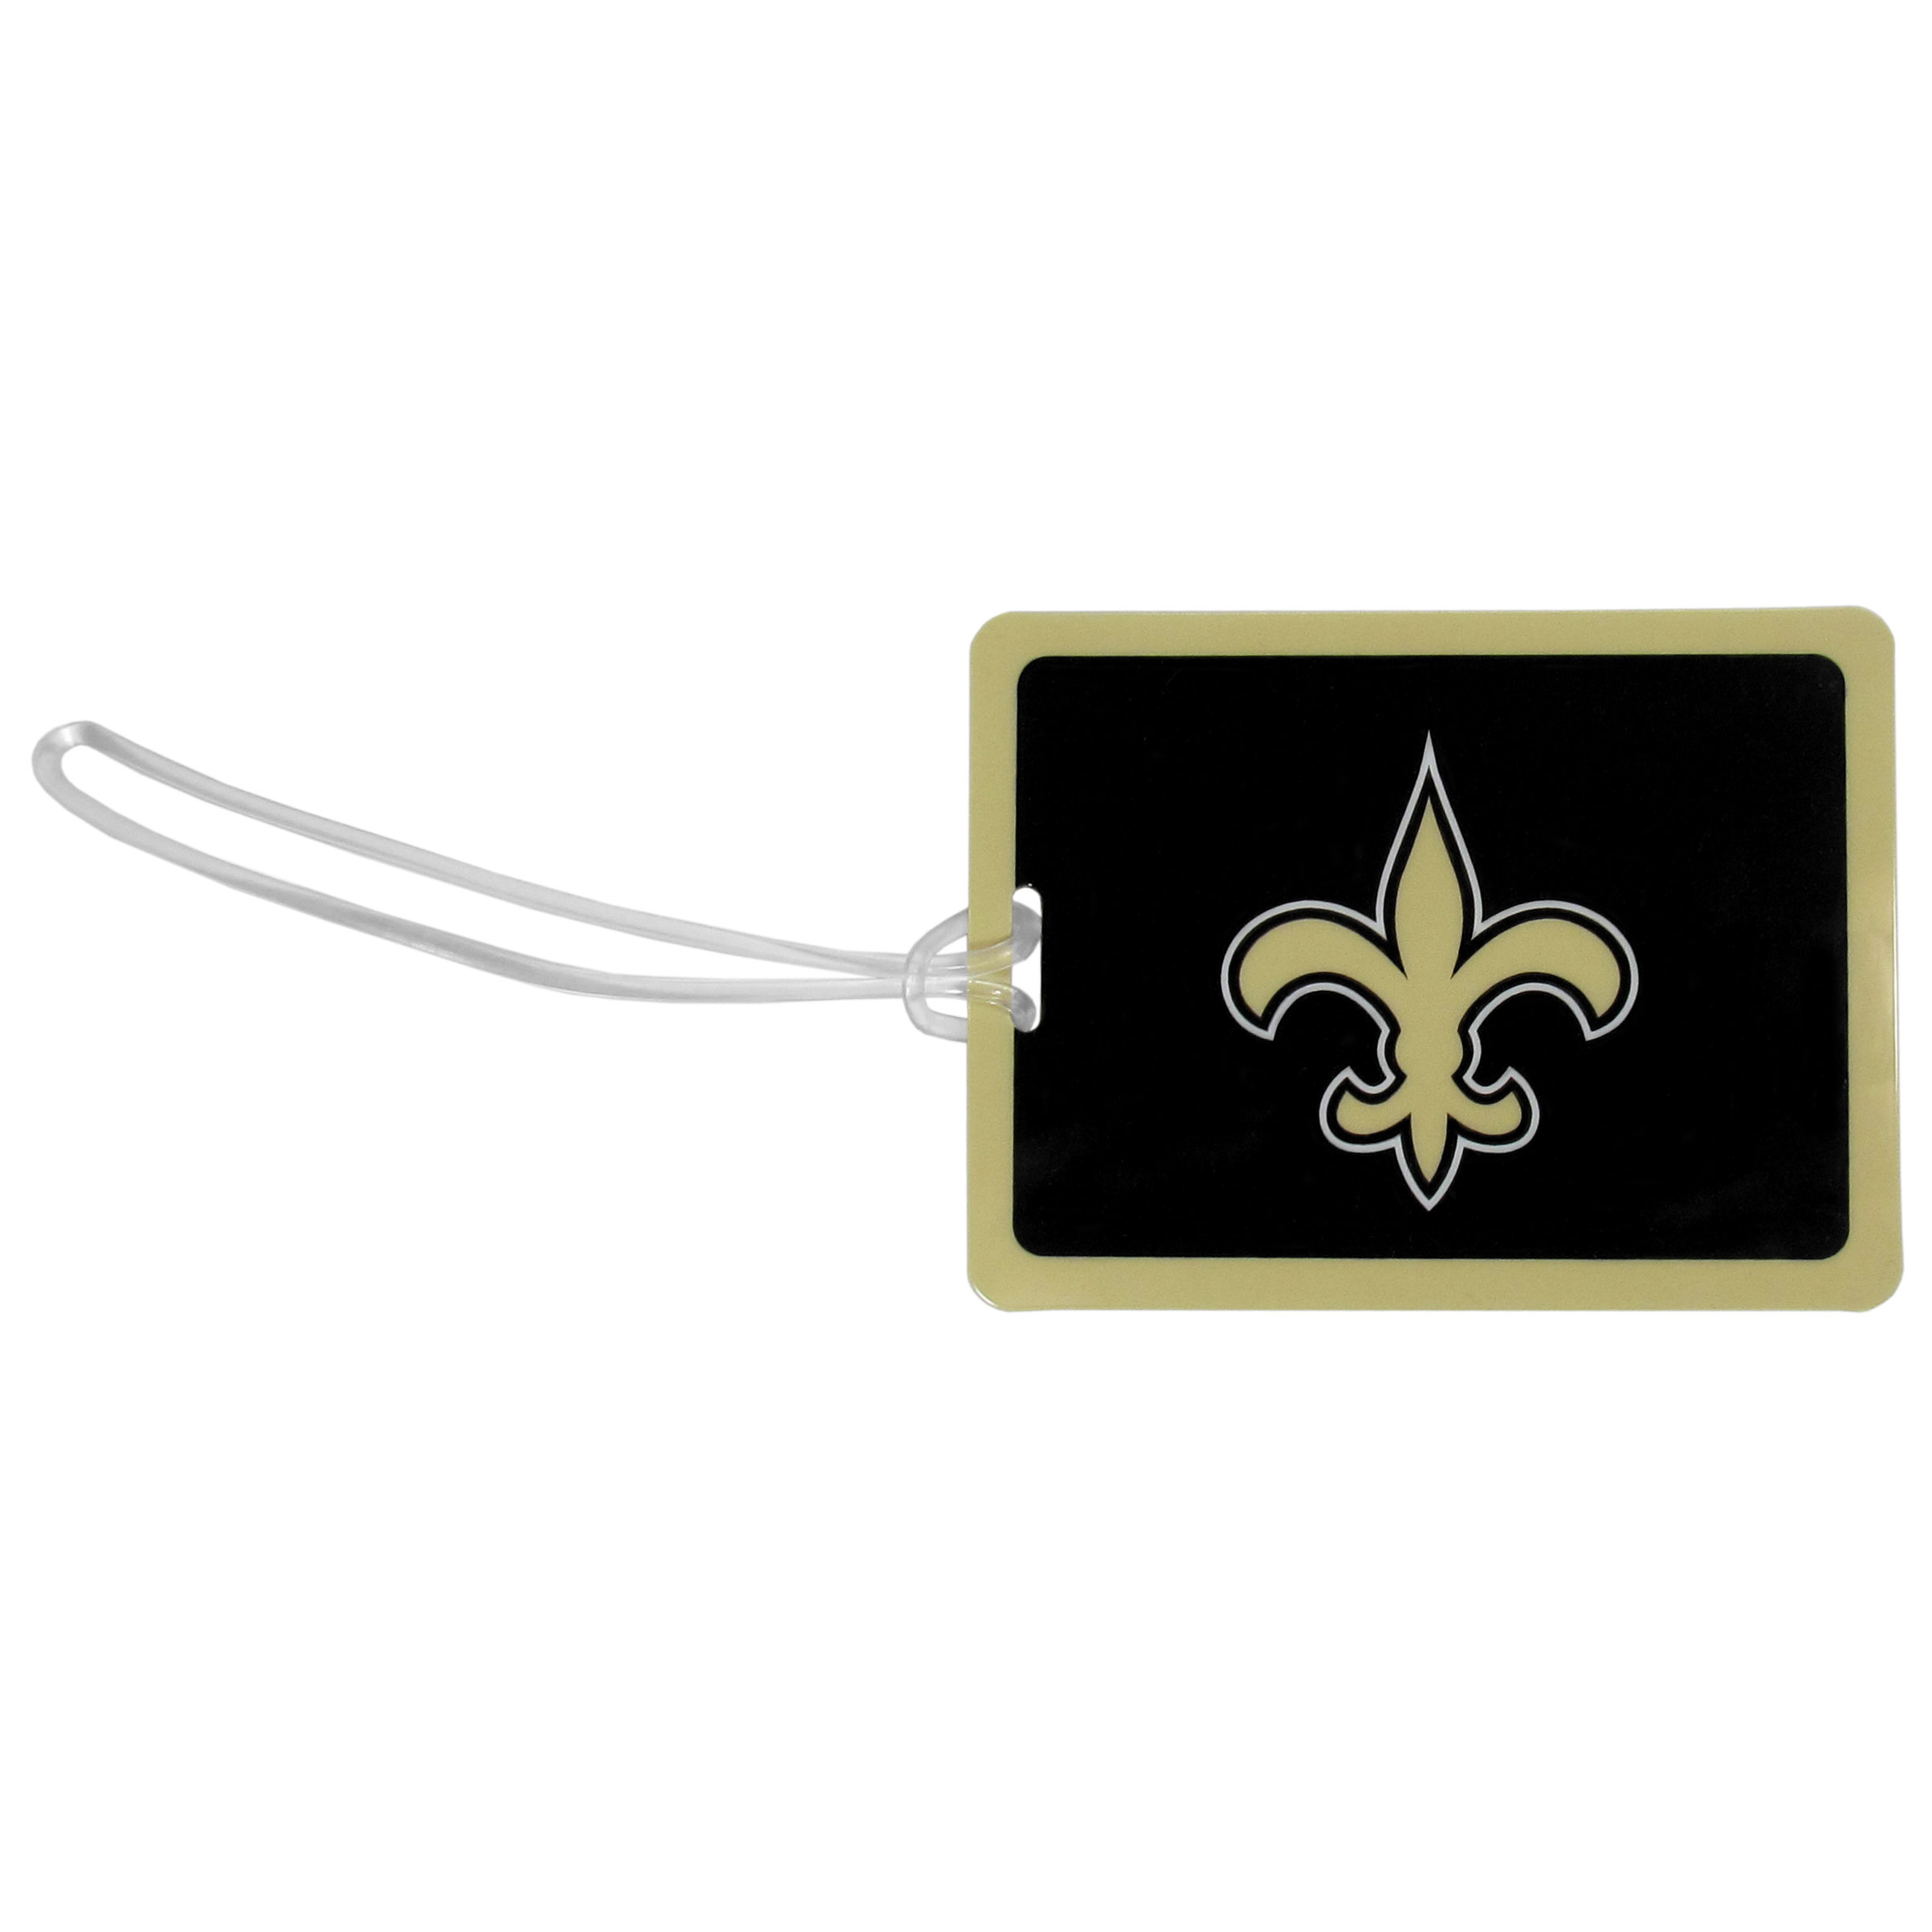 New Orleans Saints Vinyl Luggage Tag - Tired of trying to spot your suitcase or bag in a sea of luggage? Try our large and colorful New Orleans Saints luggage tag set. The tag is 4x3 inches and has a 5 inch cord to attach it easily to your bags, backpacks or luggage. The front of the tag features the team logo in a bright, team colored background and you can write you name, address and phone number on the back of the tag.